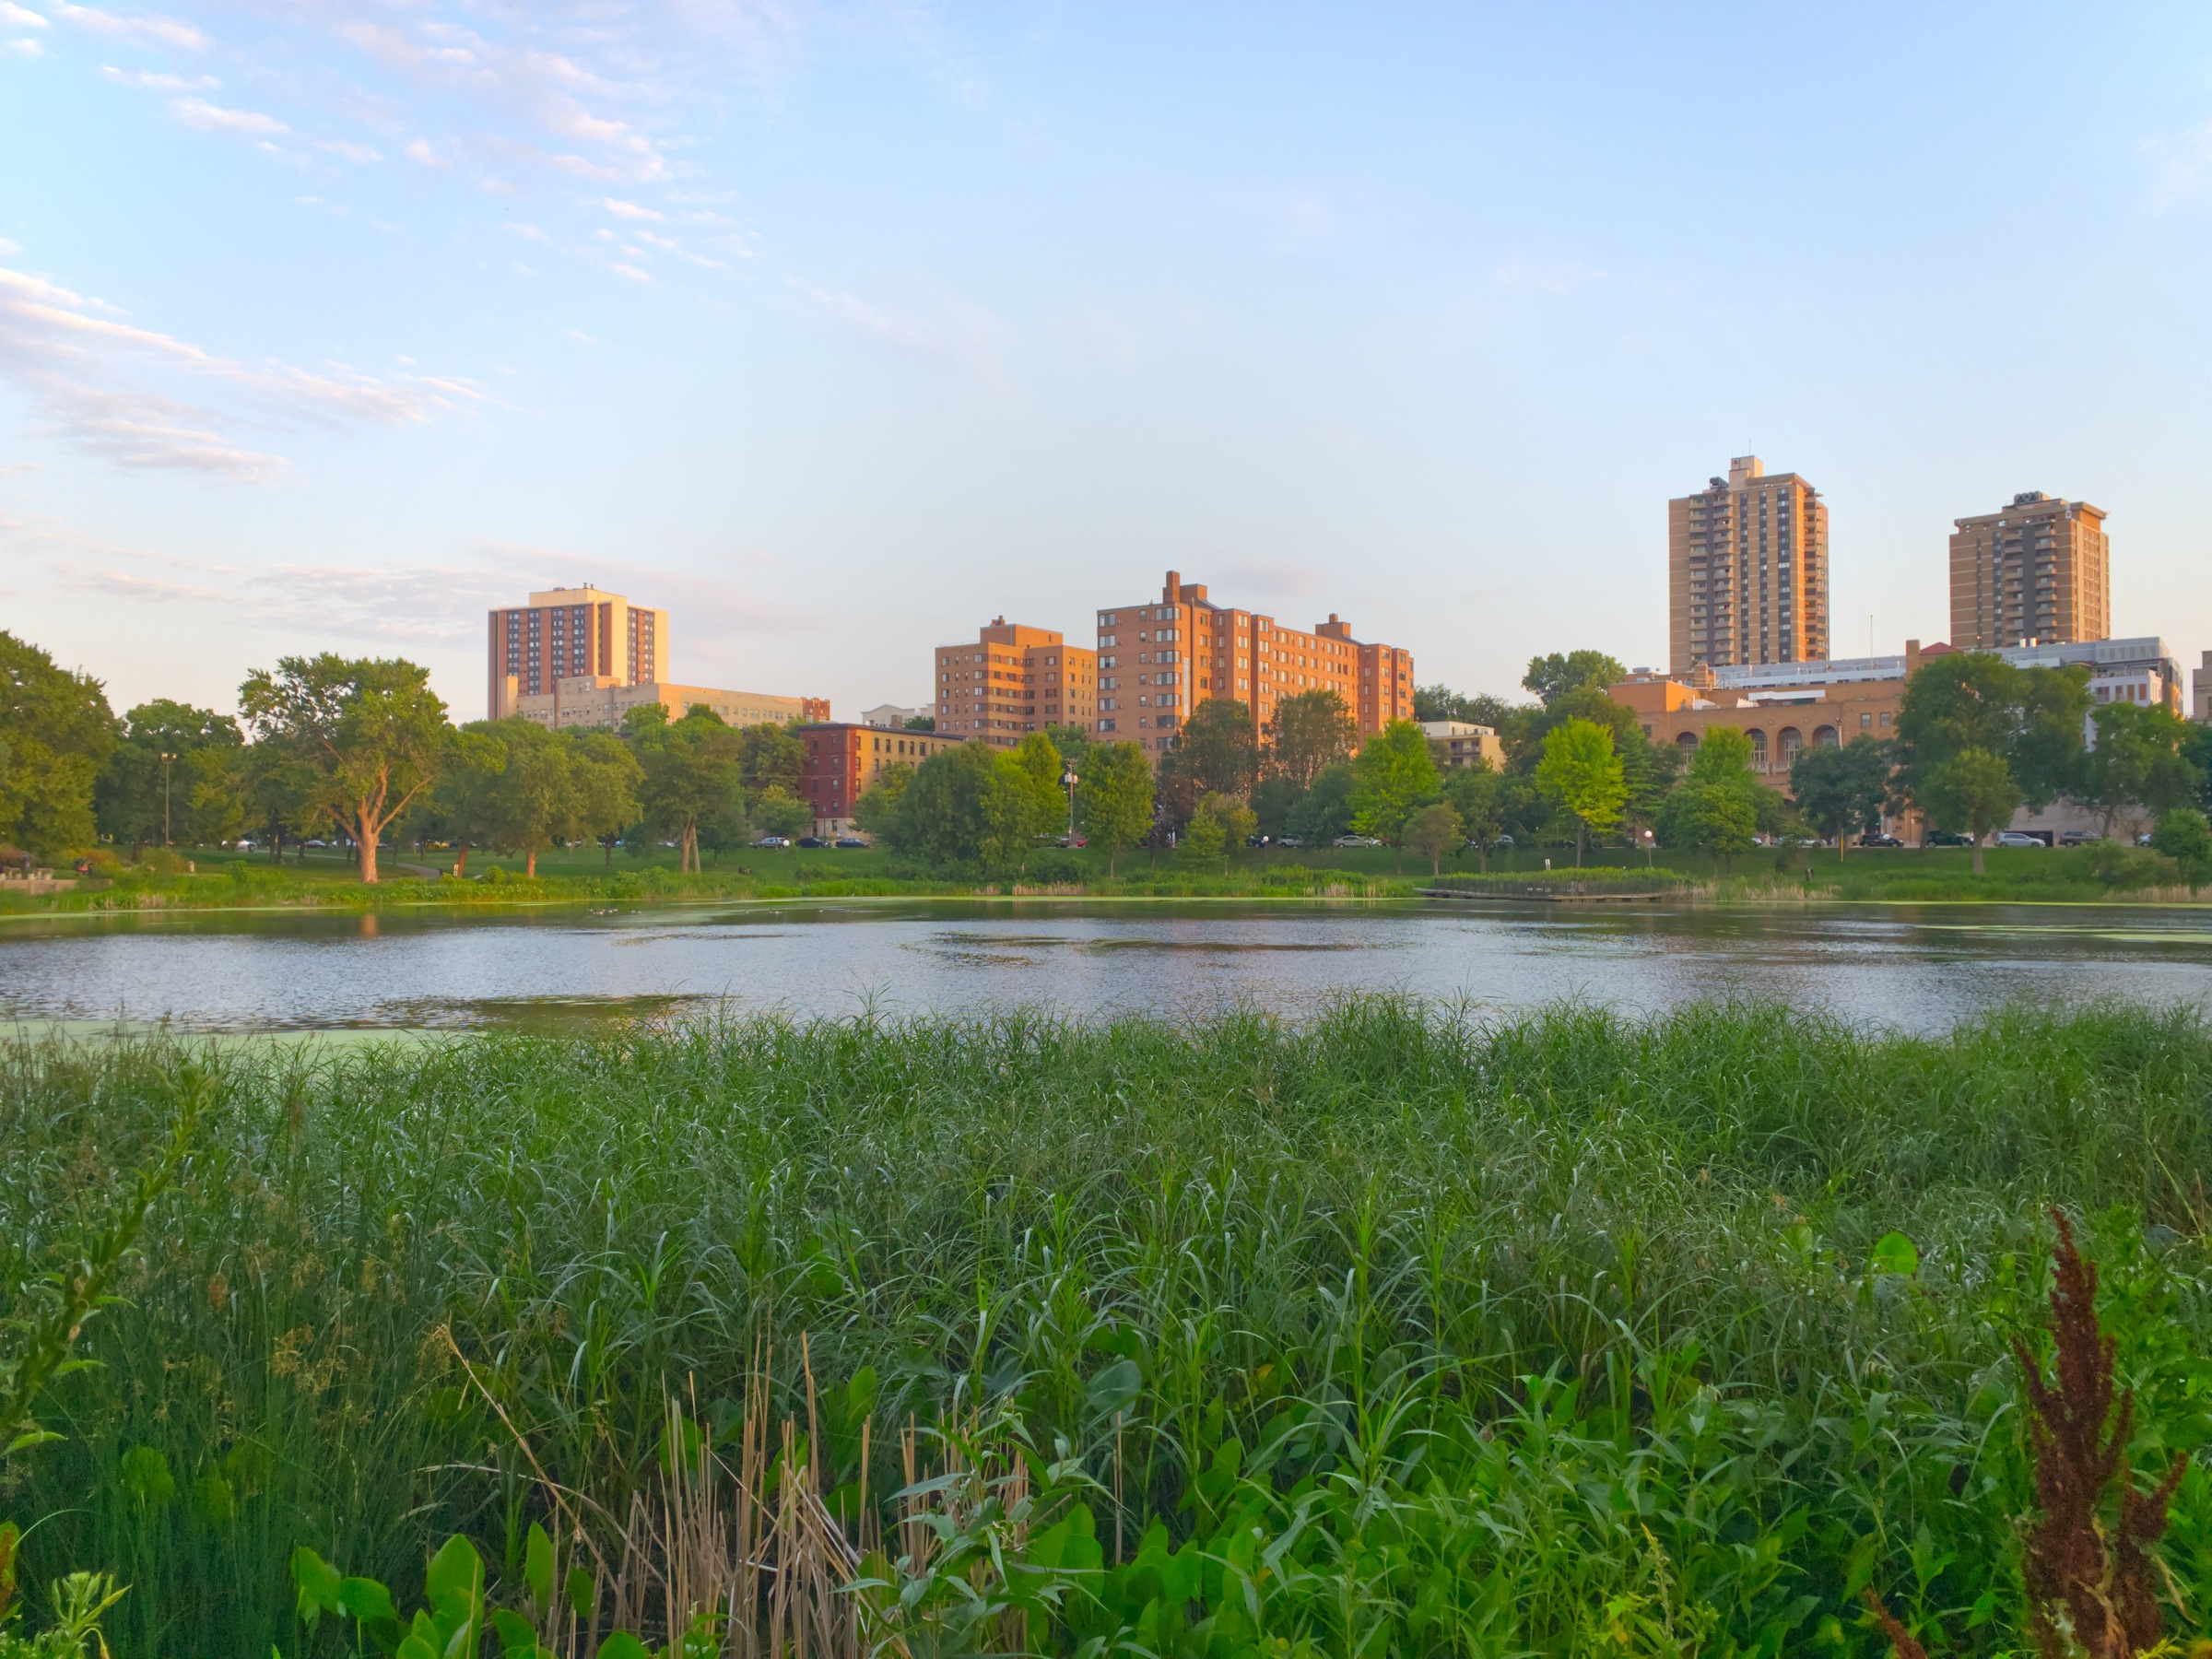 About Loring Park